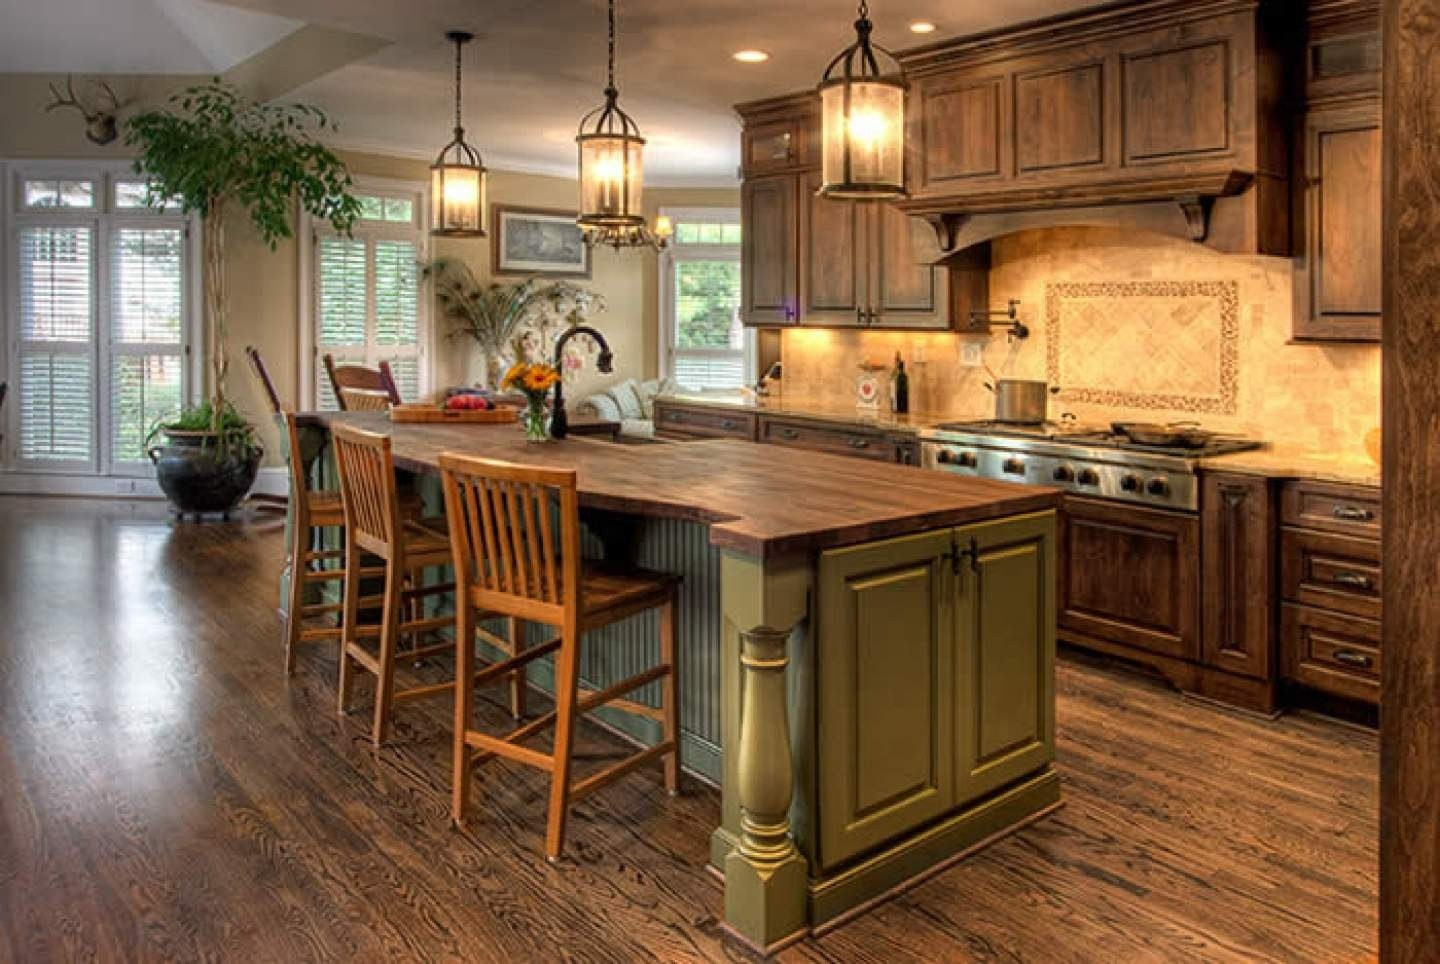 best hardwood for kitchen floor of comfortable hardwood floors in kitchen pros and cons elegant the inside hardwood floors in kitchen pros and cons elegant the best